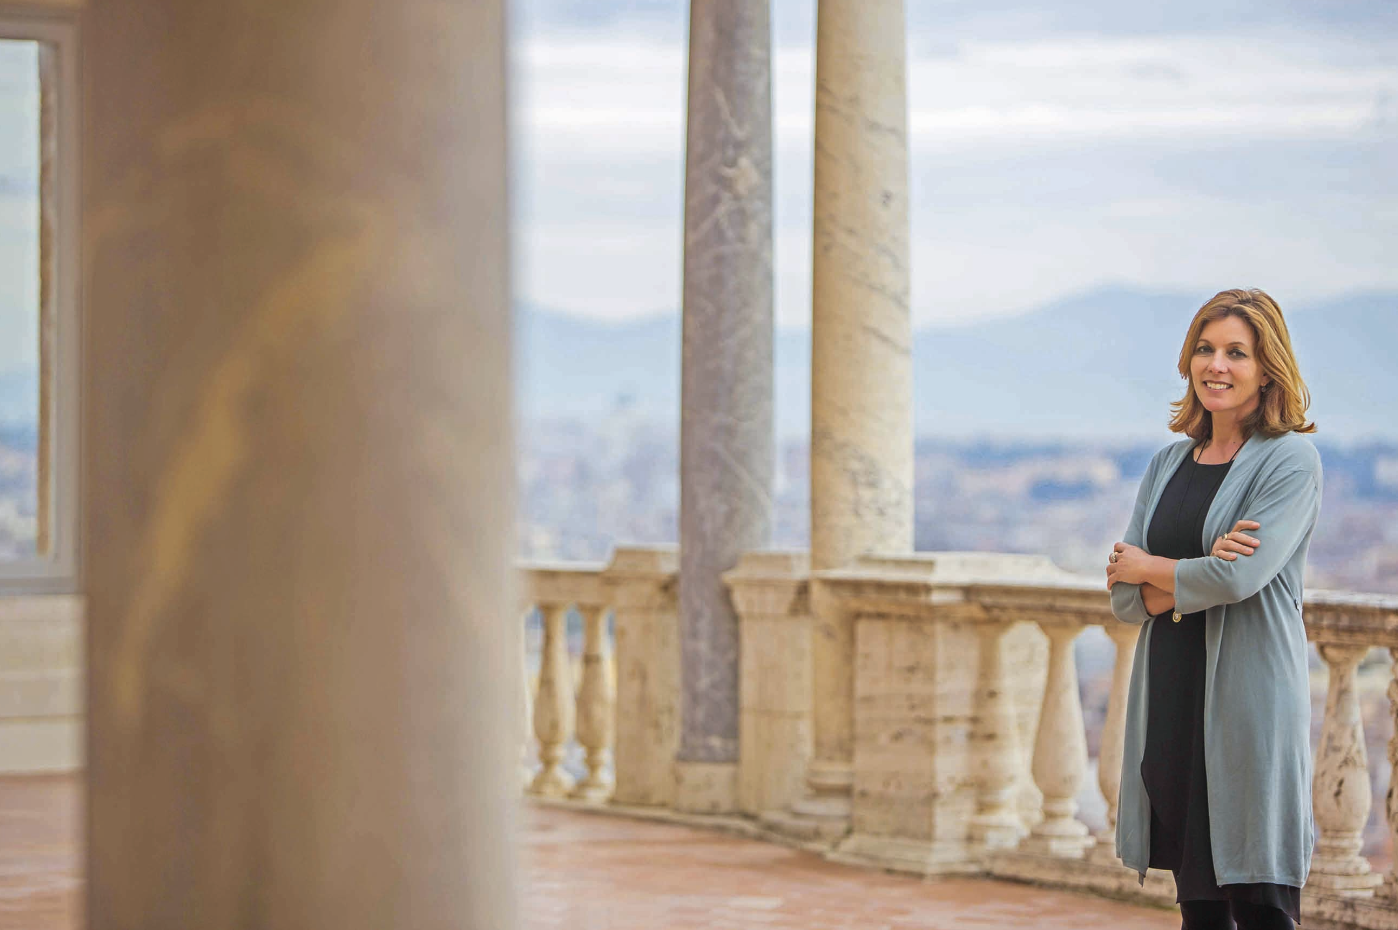 'Beauty can lead to faith' – an interview with the director of the Vatican Museums